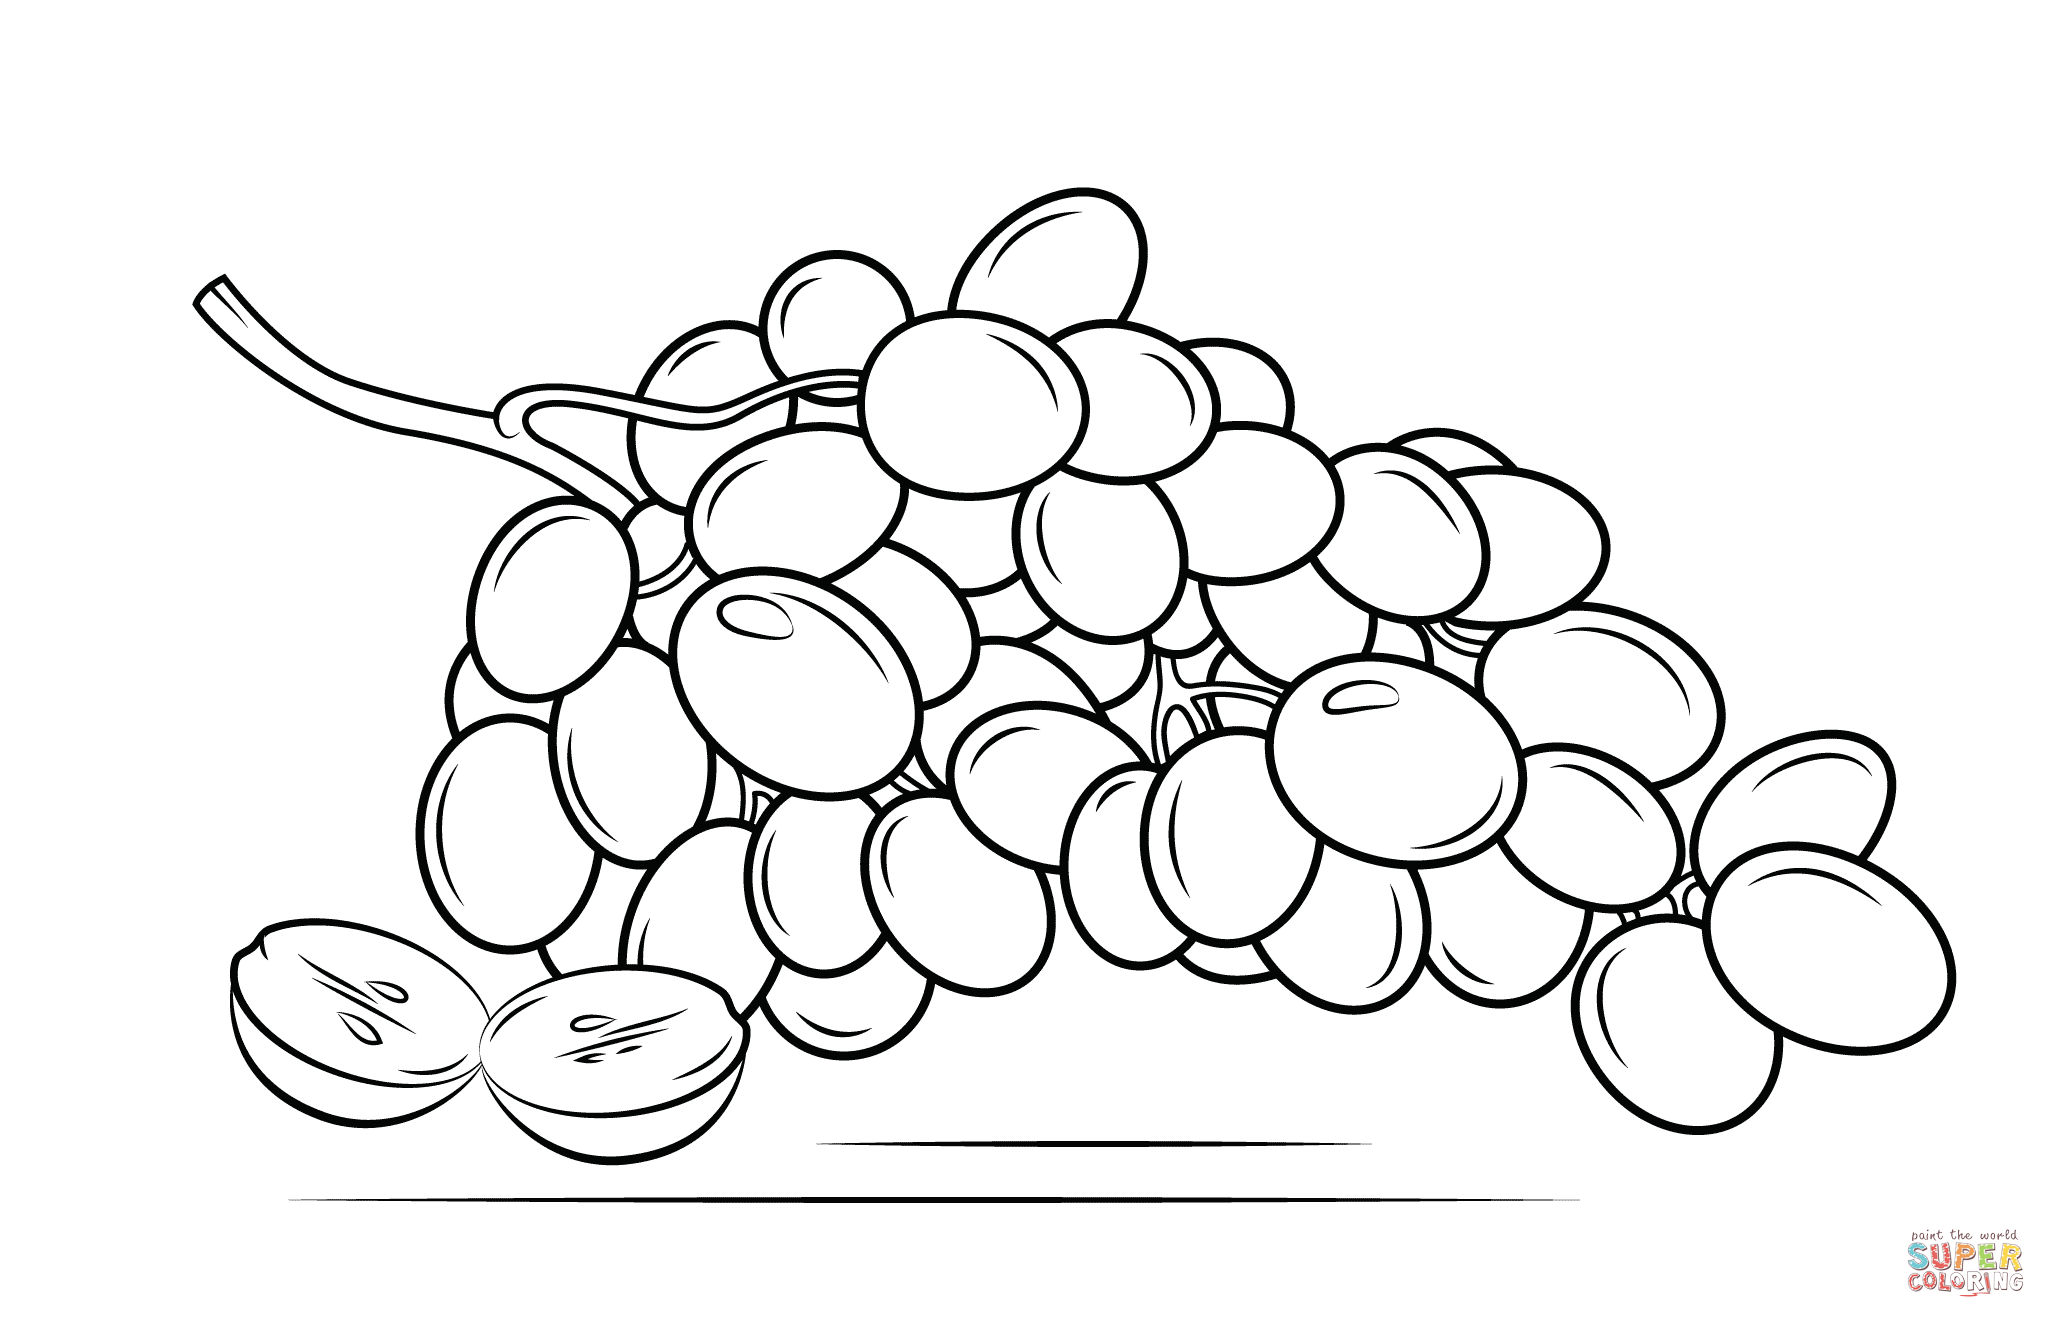 G S Coloring Page